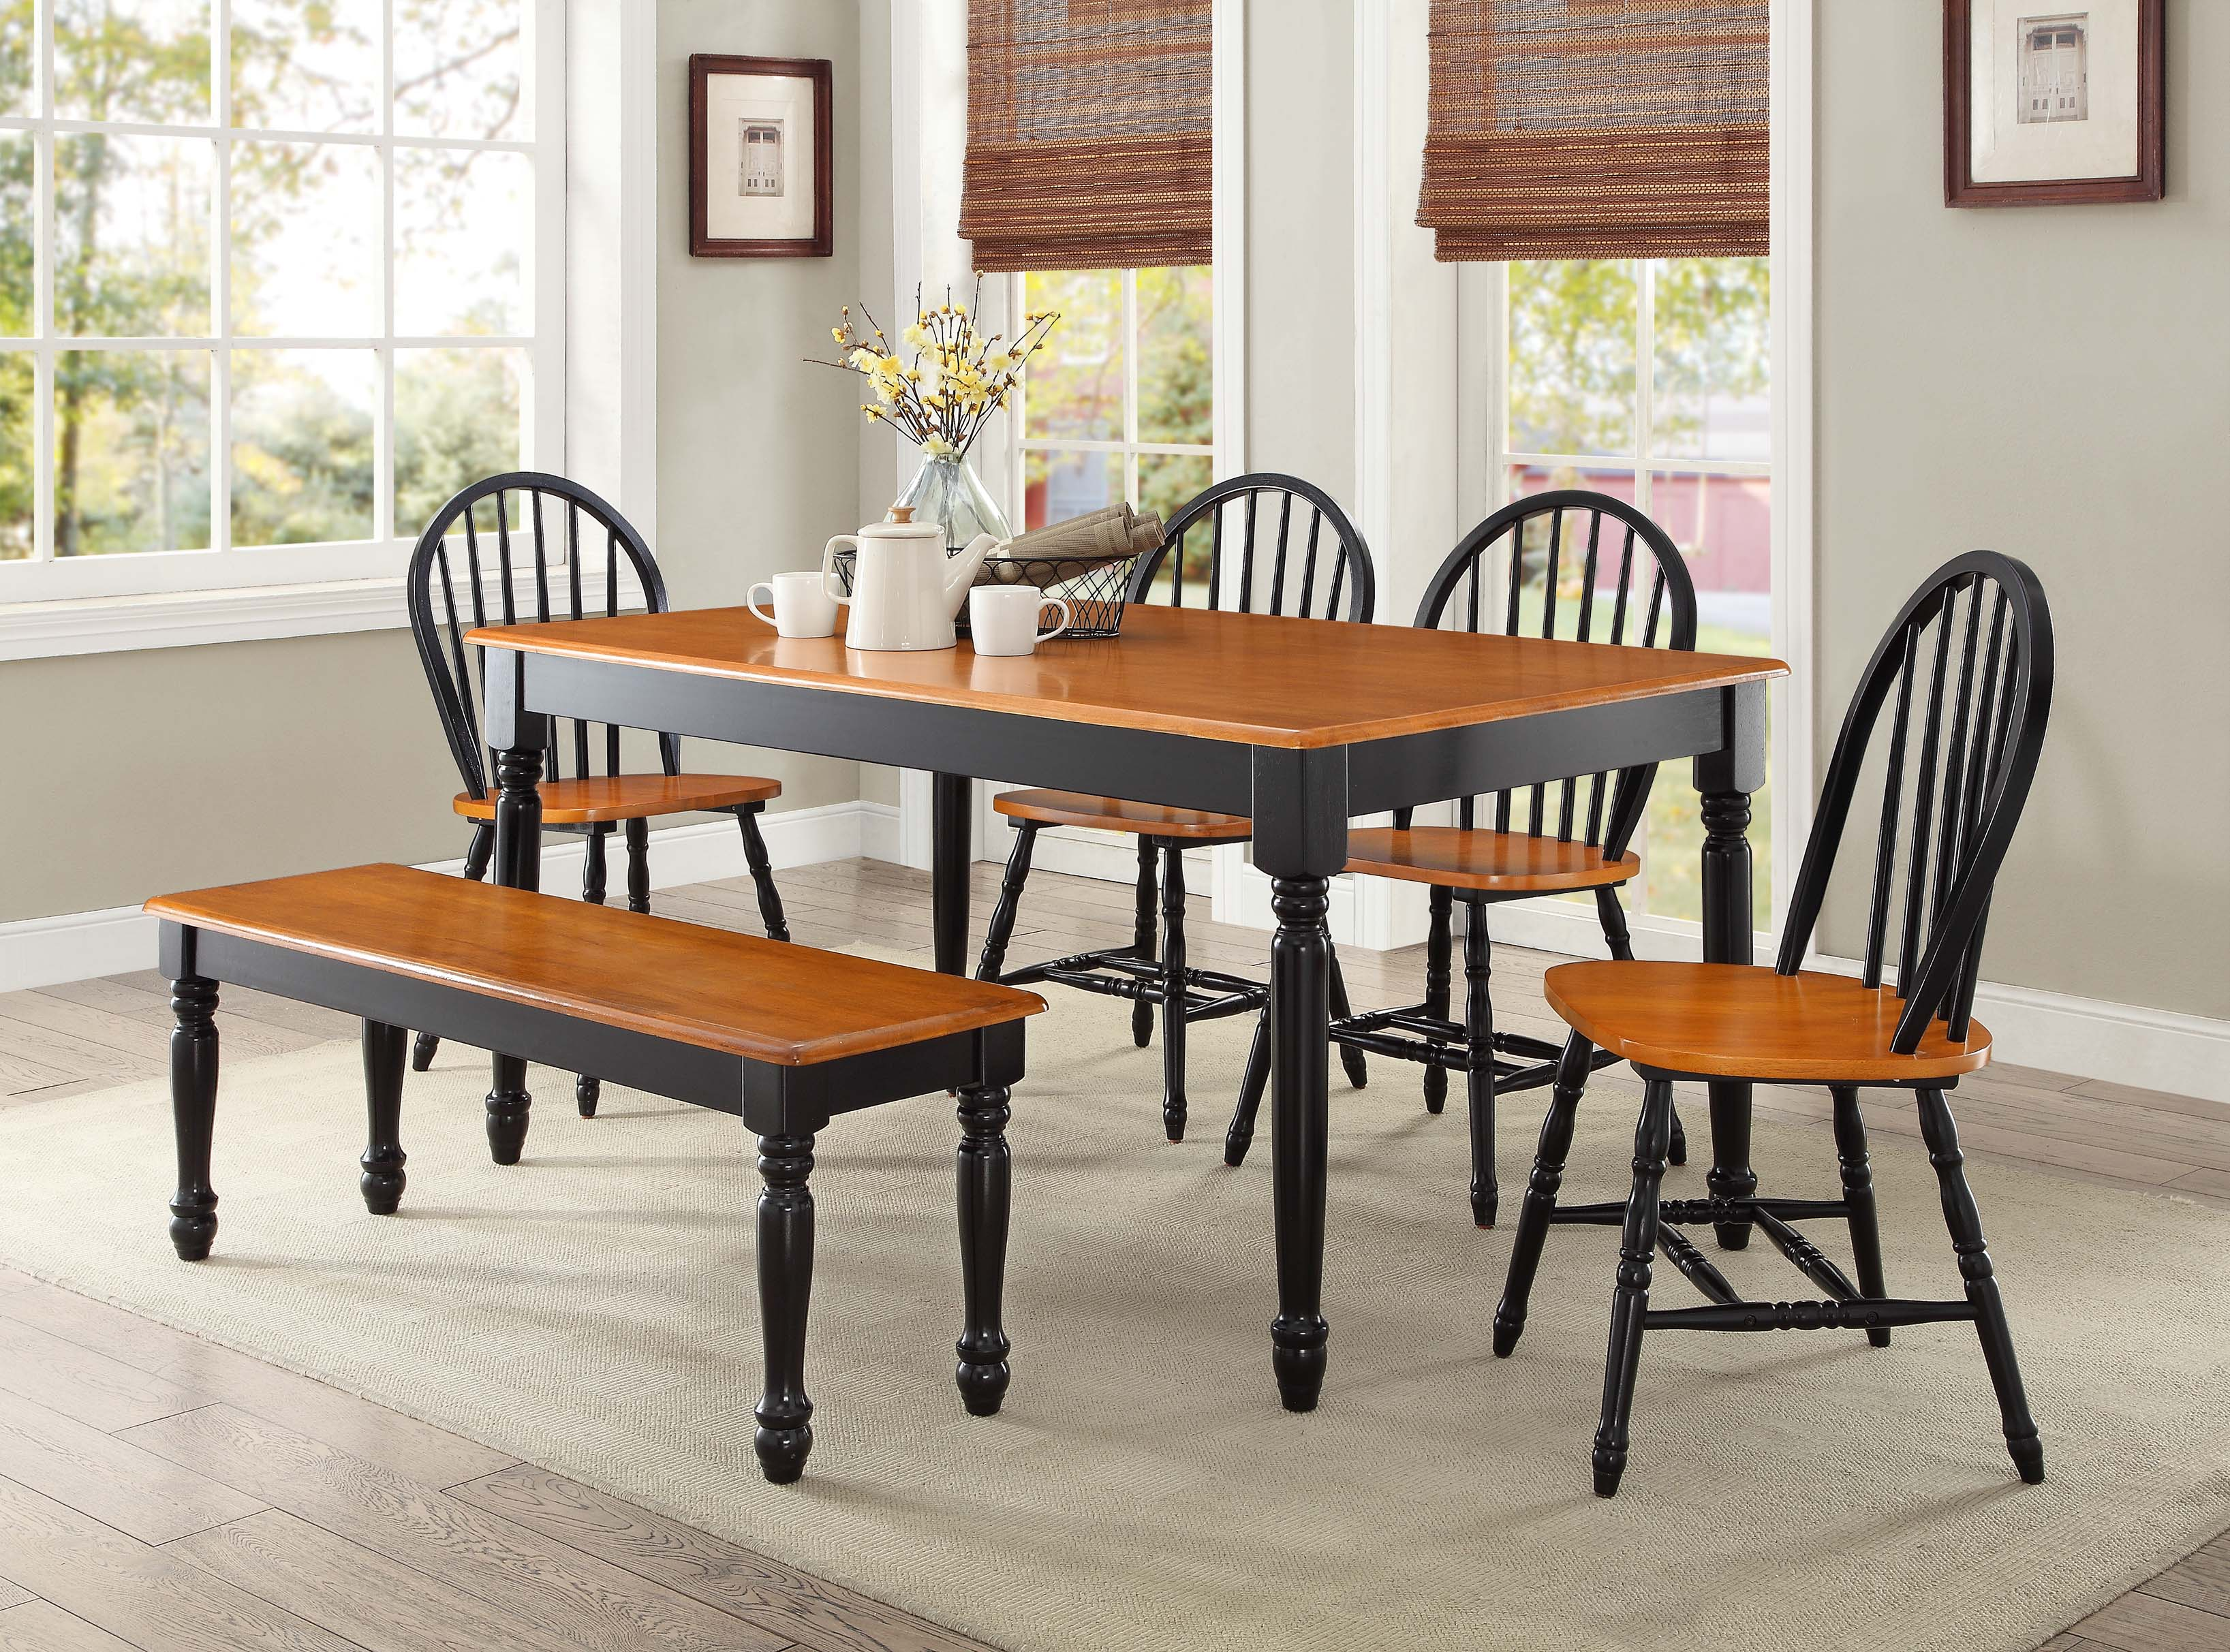 Small Modern Kitchen Table Kitchen & Dining Furniture  Walmart